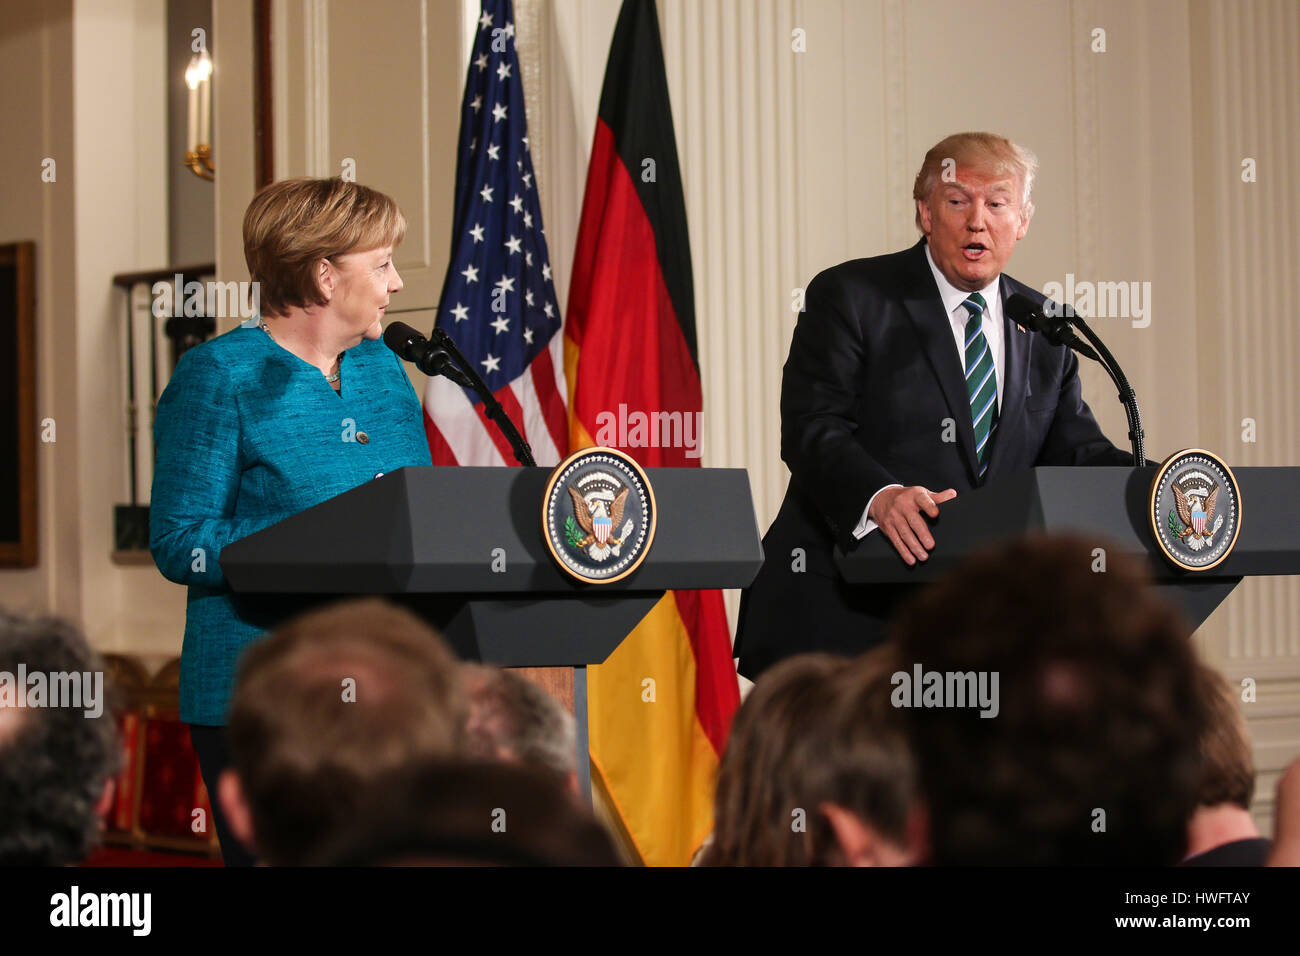 Angela Merkel visit German Chancellor Angela Merkel visits Washington, D.C. on Friday, March  17, 2017 and meets with U.S. President Donald Trump at the White House.